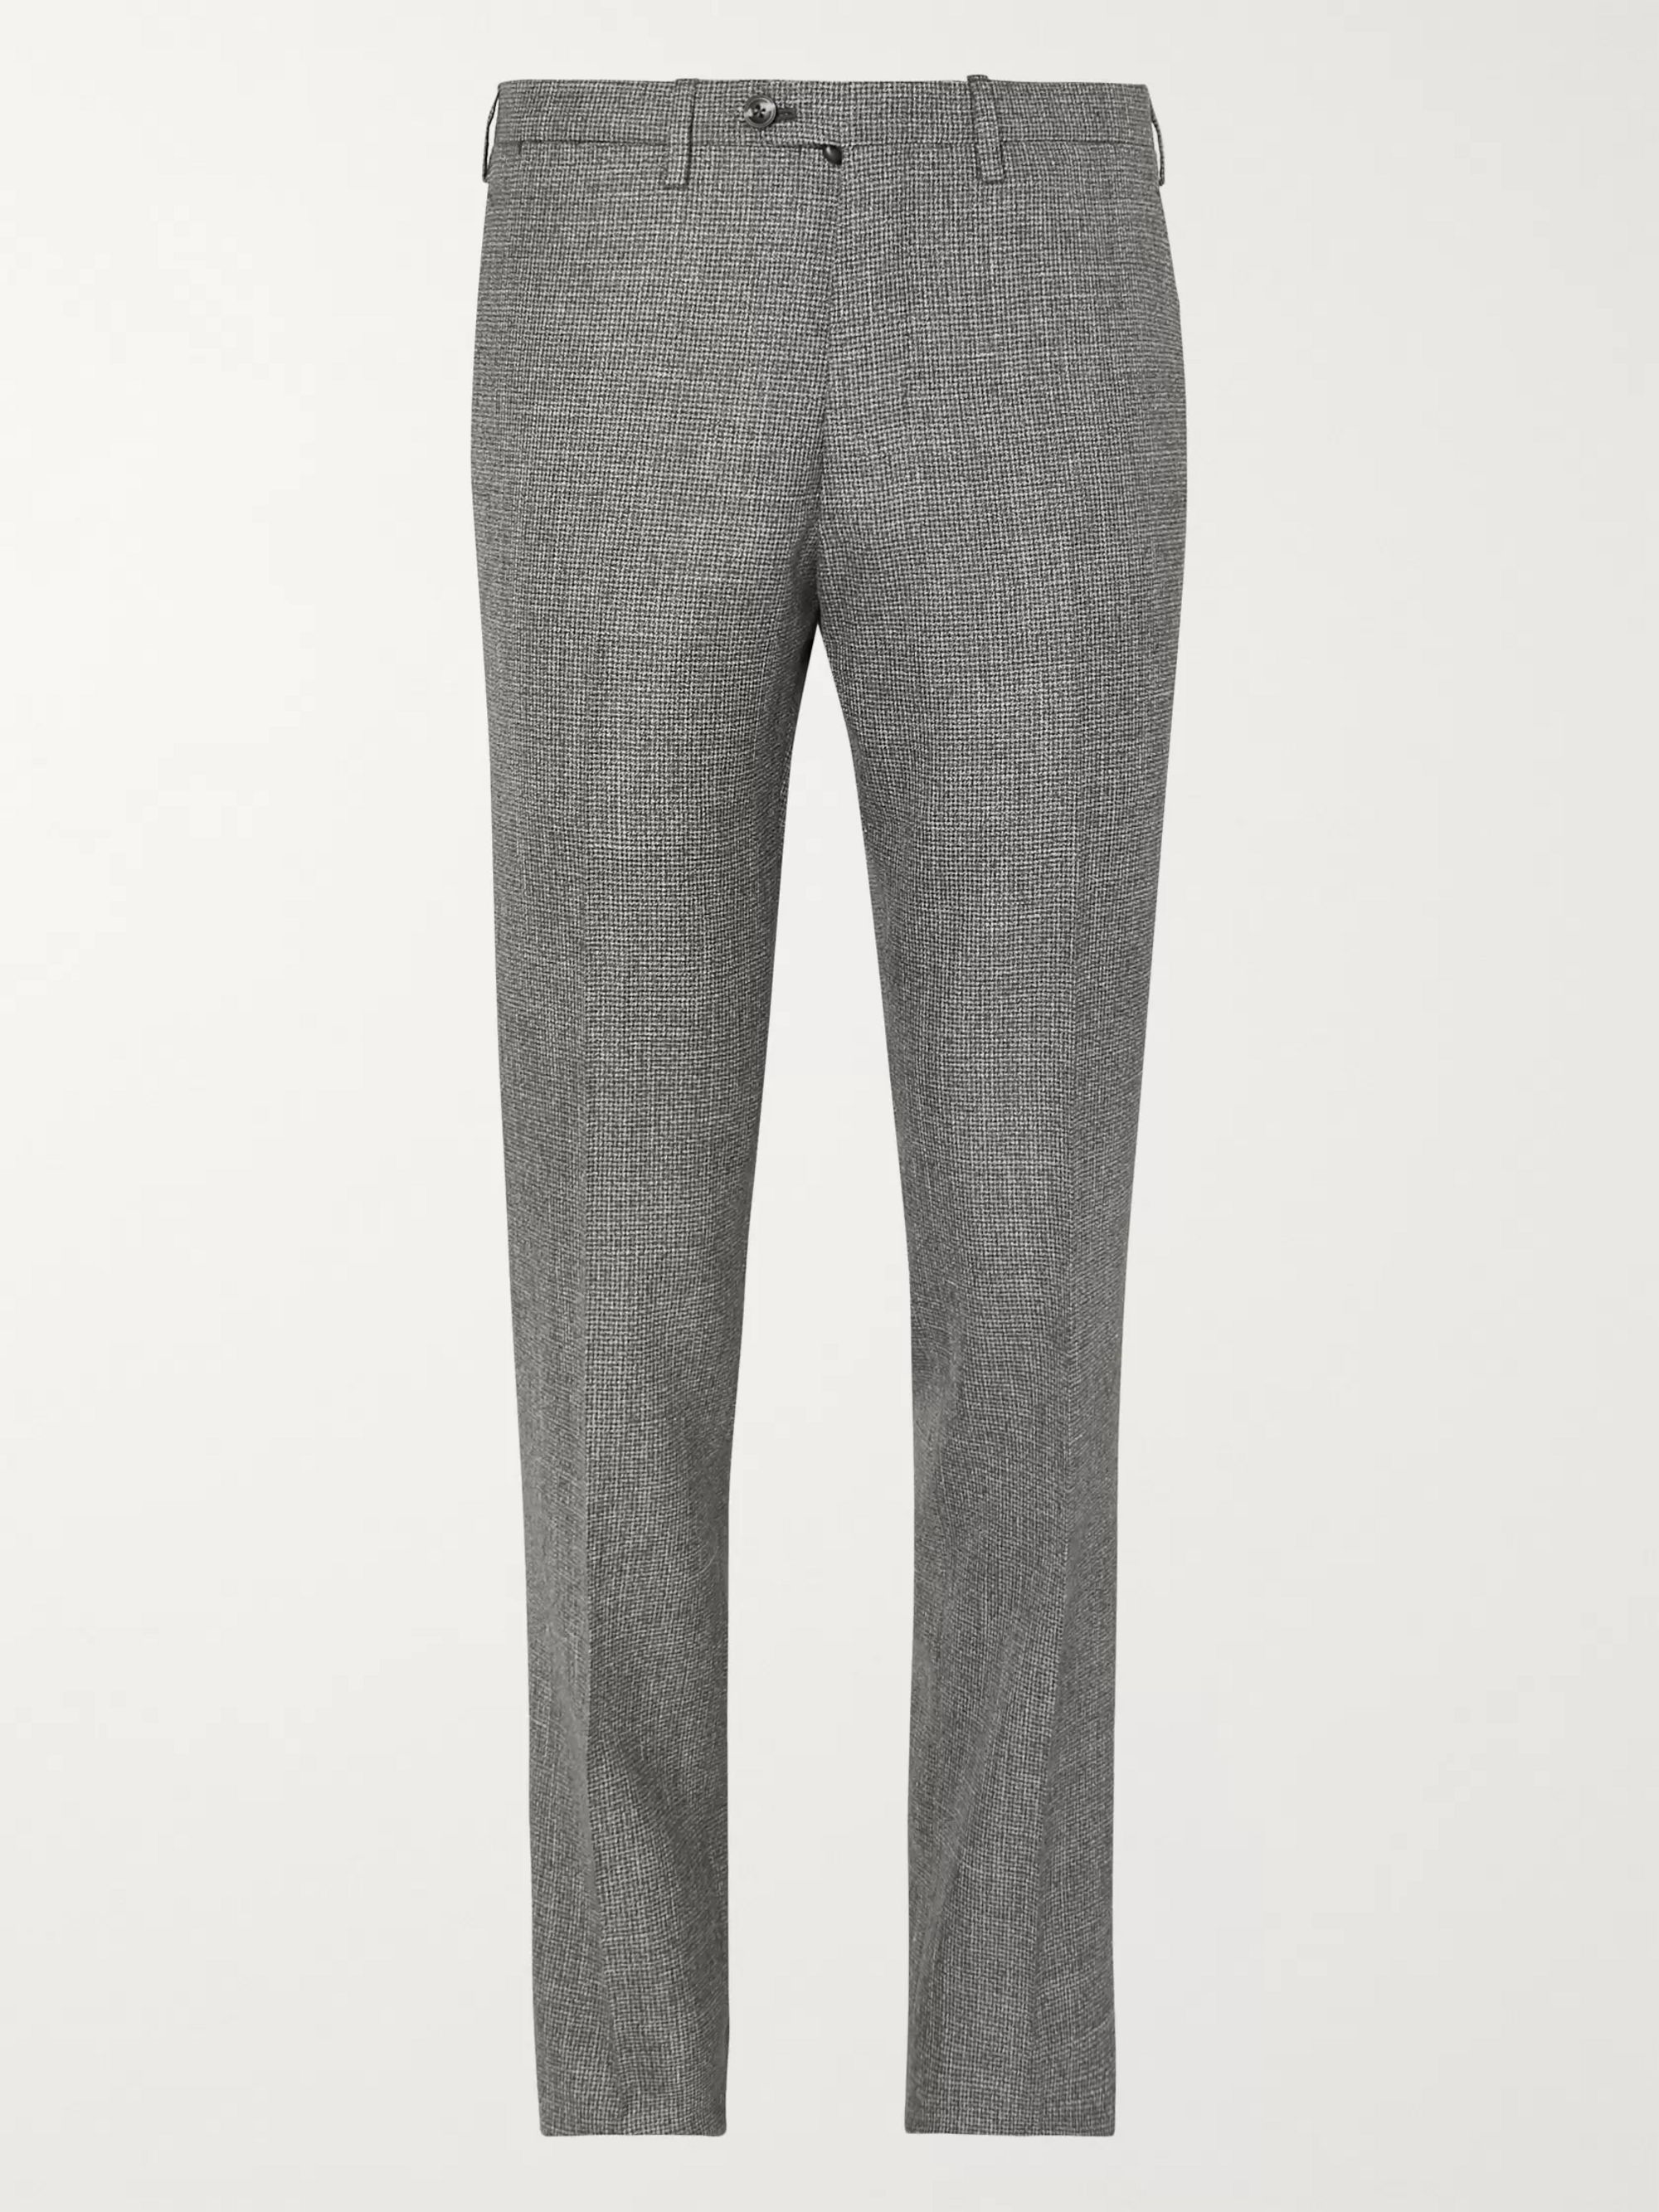 KITON Grey Slim-Fit Micro-Puppytooth Cashmere, Linen and Silk-Blend Suit Trousers